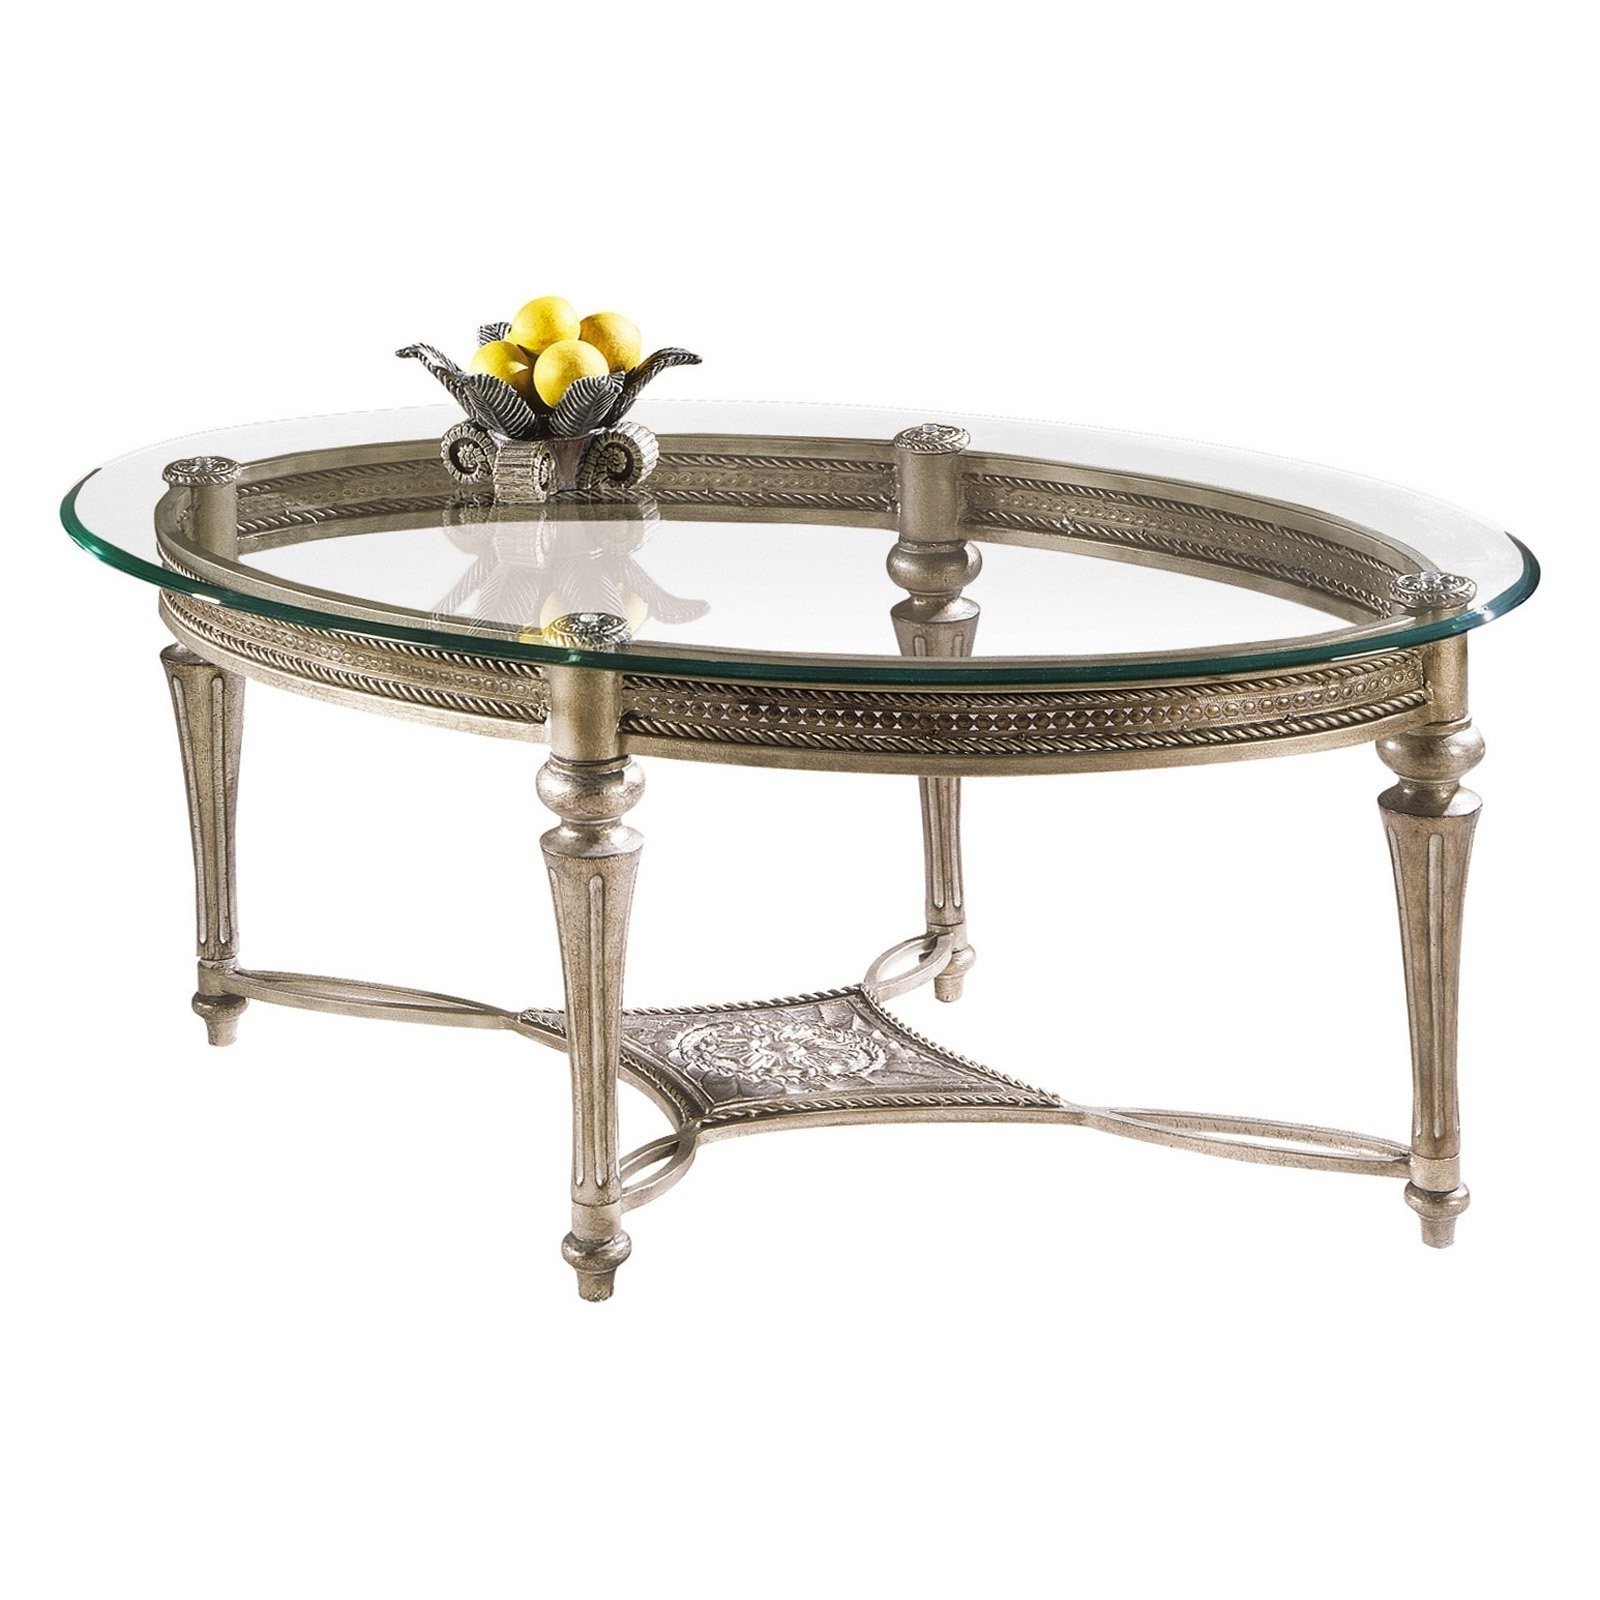 12 Luxury Oval Coffee Table Glass For Widely Used Brisbane Oval Coffee Tables (View 15 of 20)